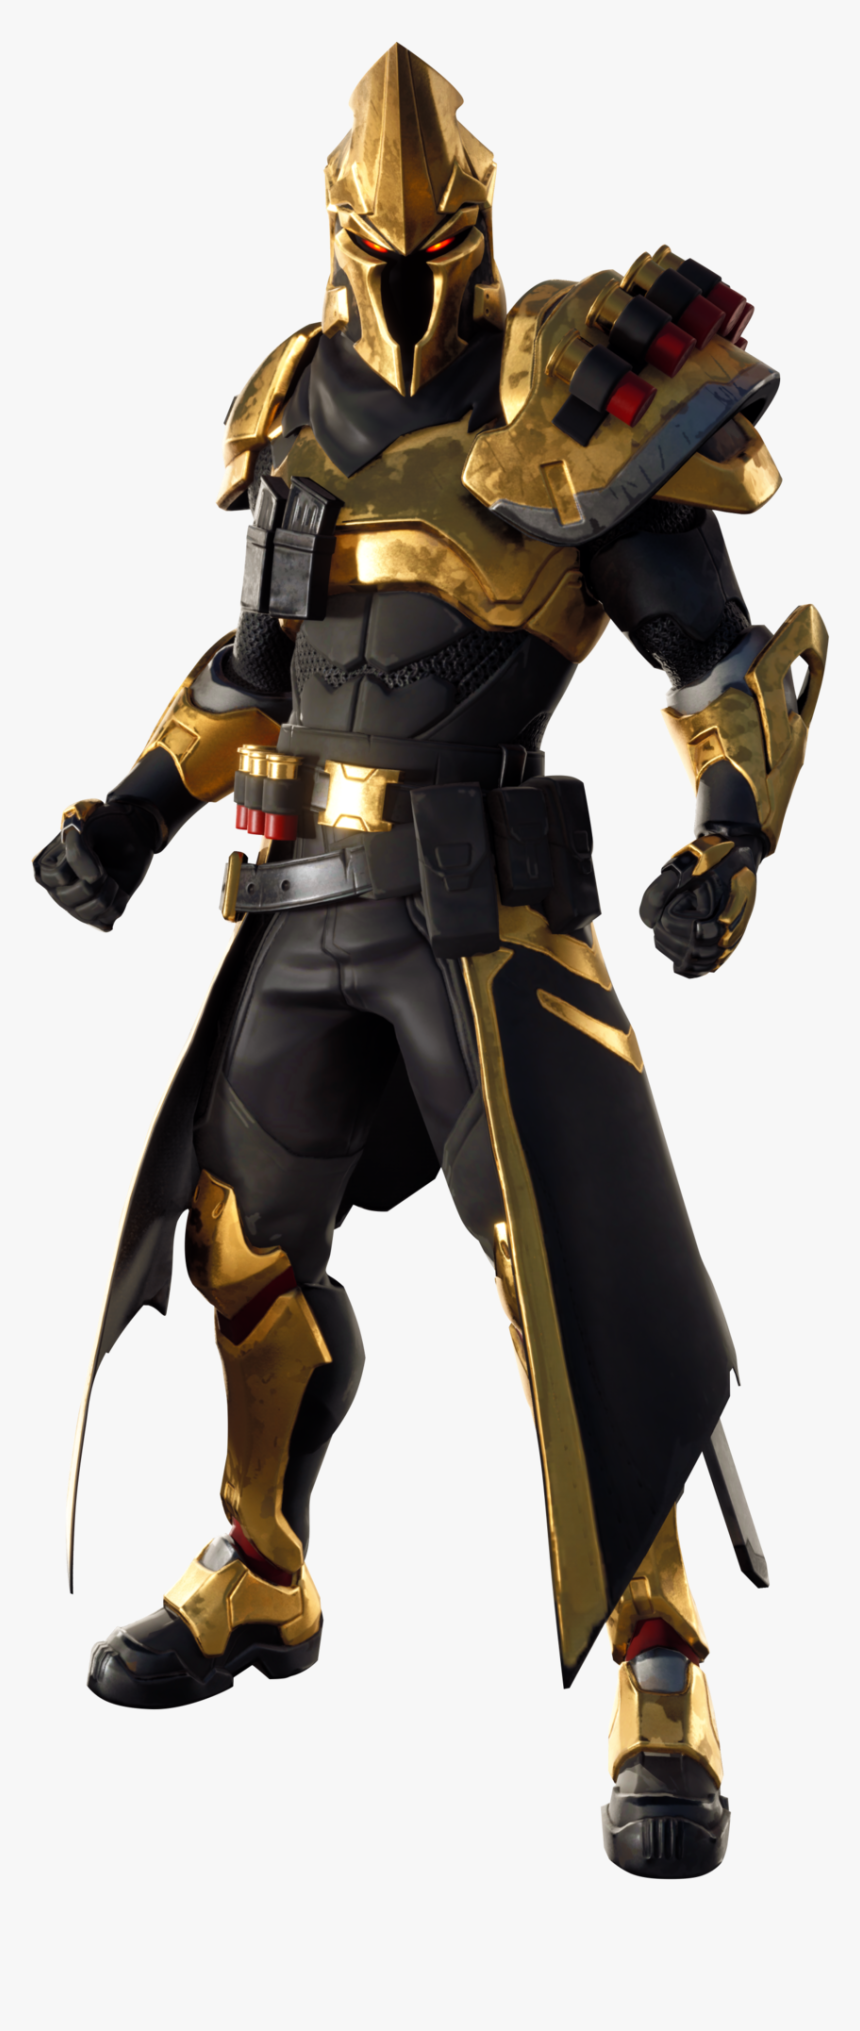 Ultima Knight Outfit Fortnite Season X Skins Hd Png Download Transparent Png Image Pngitem